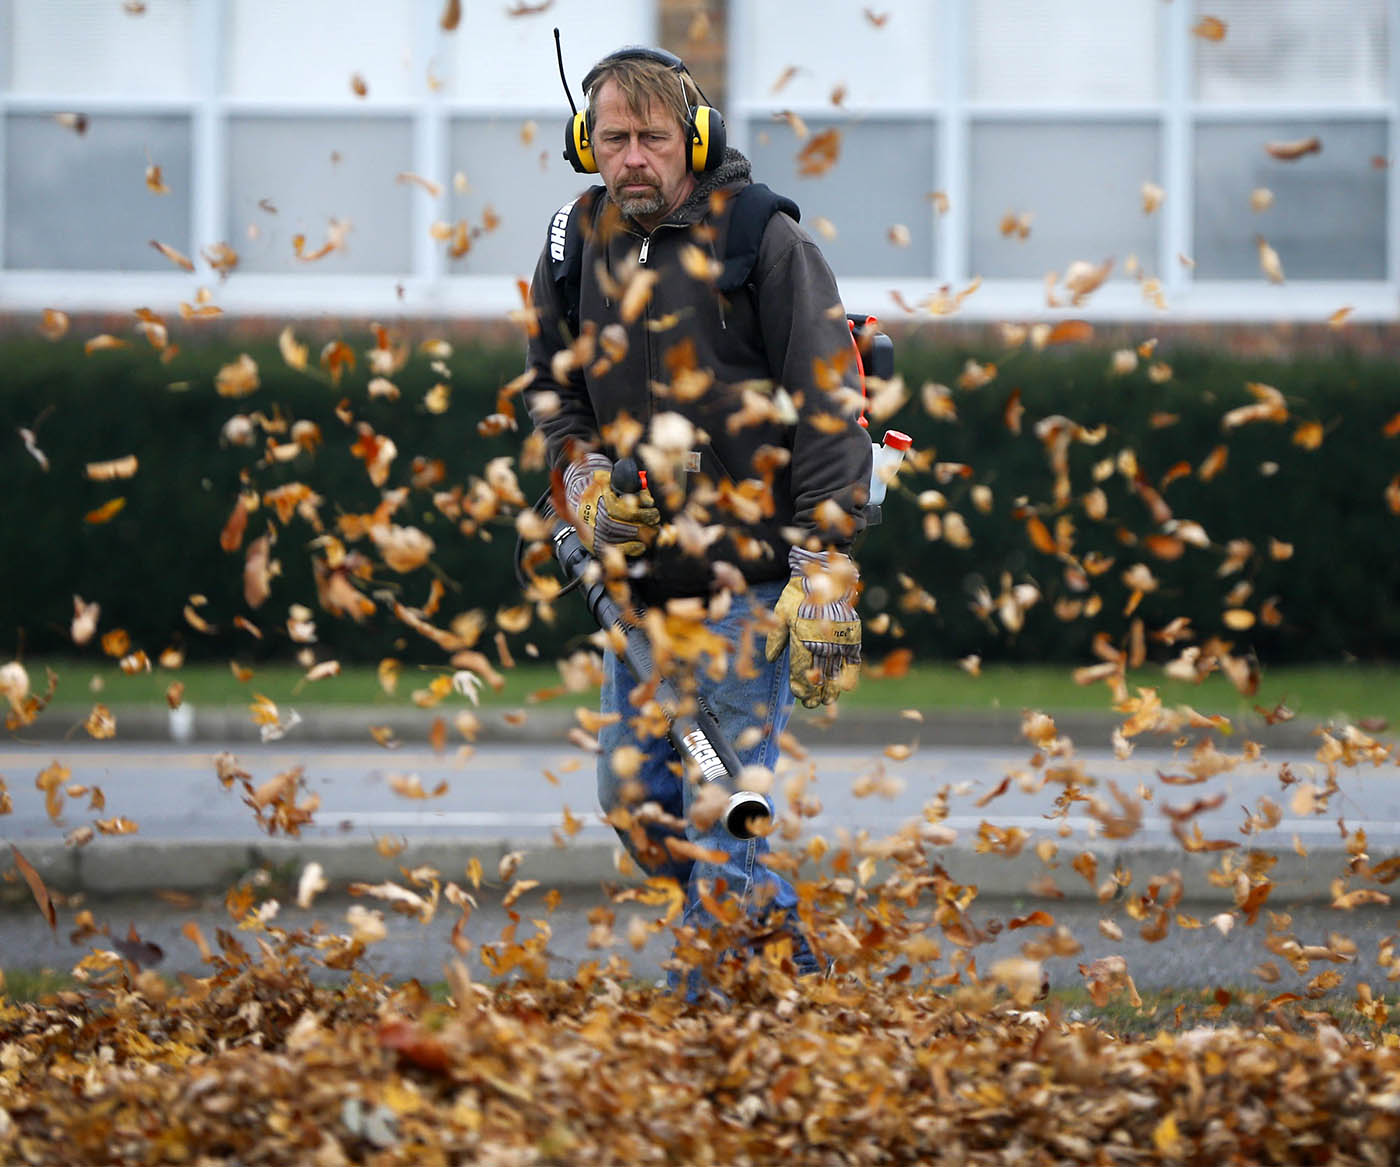 Eric Matwijow blows leaves into a pile on Abbott Rd in Orchard Park Wednesday, Nov. 16, 2016. (Mark Mulville/Buffalo News)